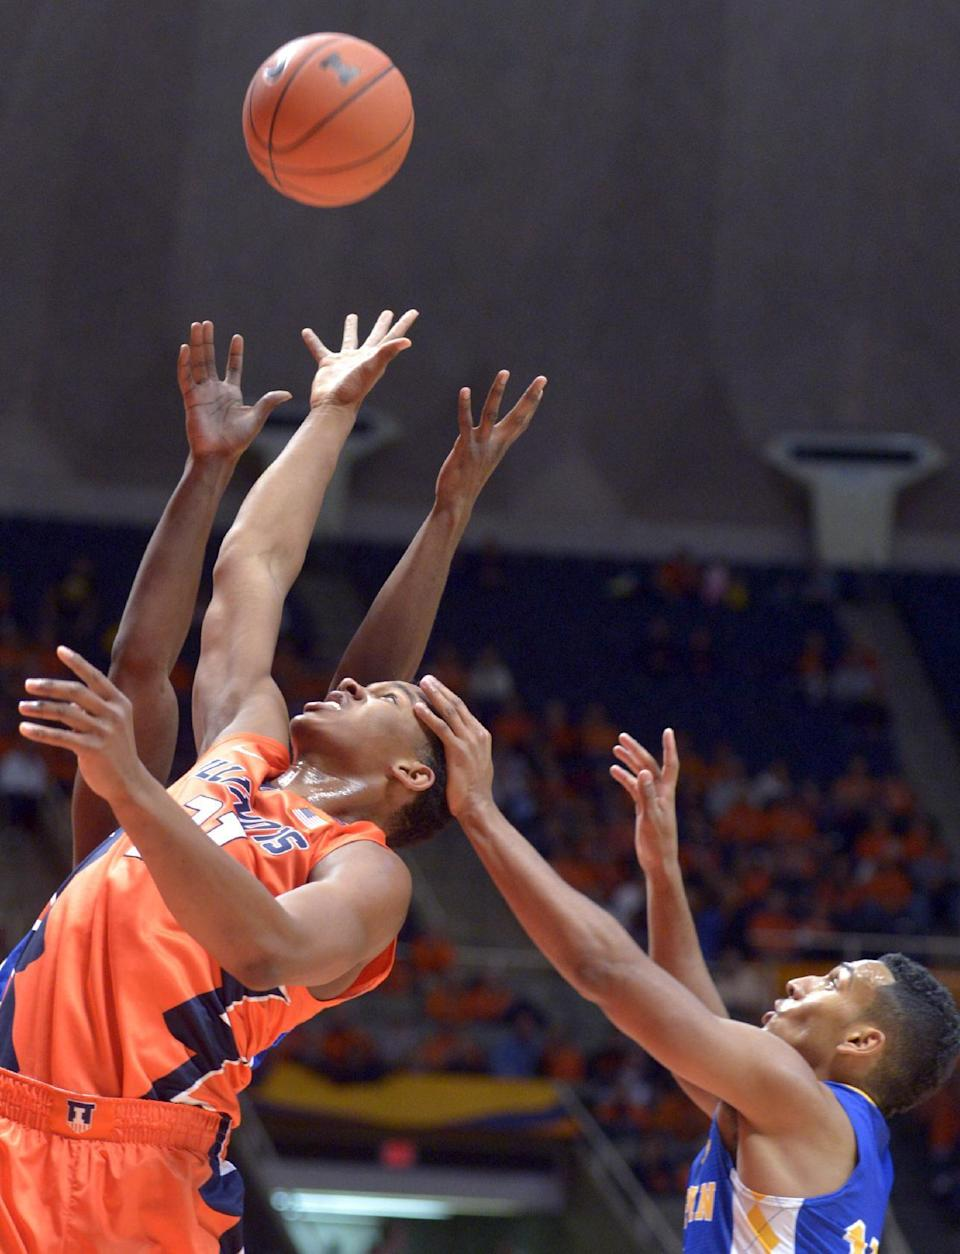 Illinois' guard Malcolm Hill (21) goes up for a shot in front of Coppin State's guard Christian Kessee (10) during an NCAA college basketball game in Champaign, Ill., Sunday, Nov. 16, 2014. (AP Photo/Robin Scholz)